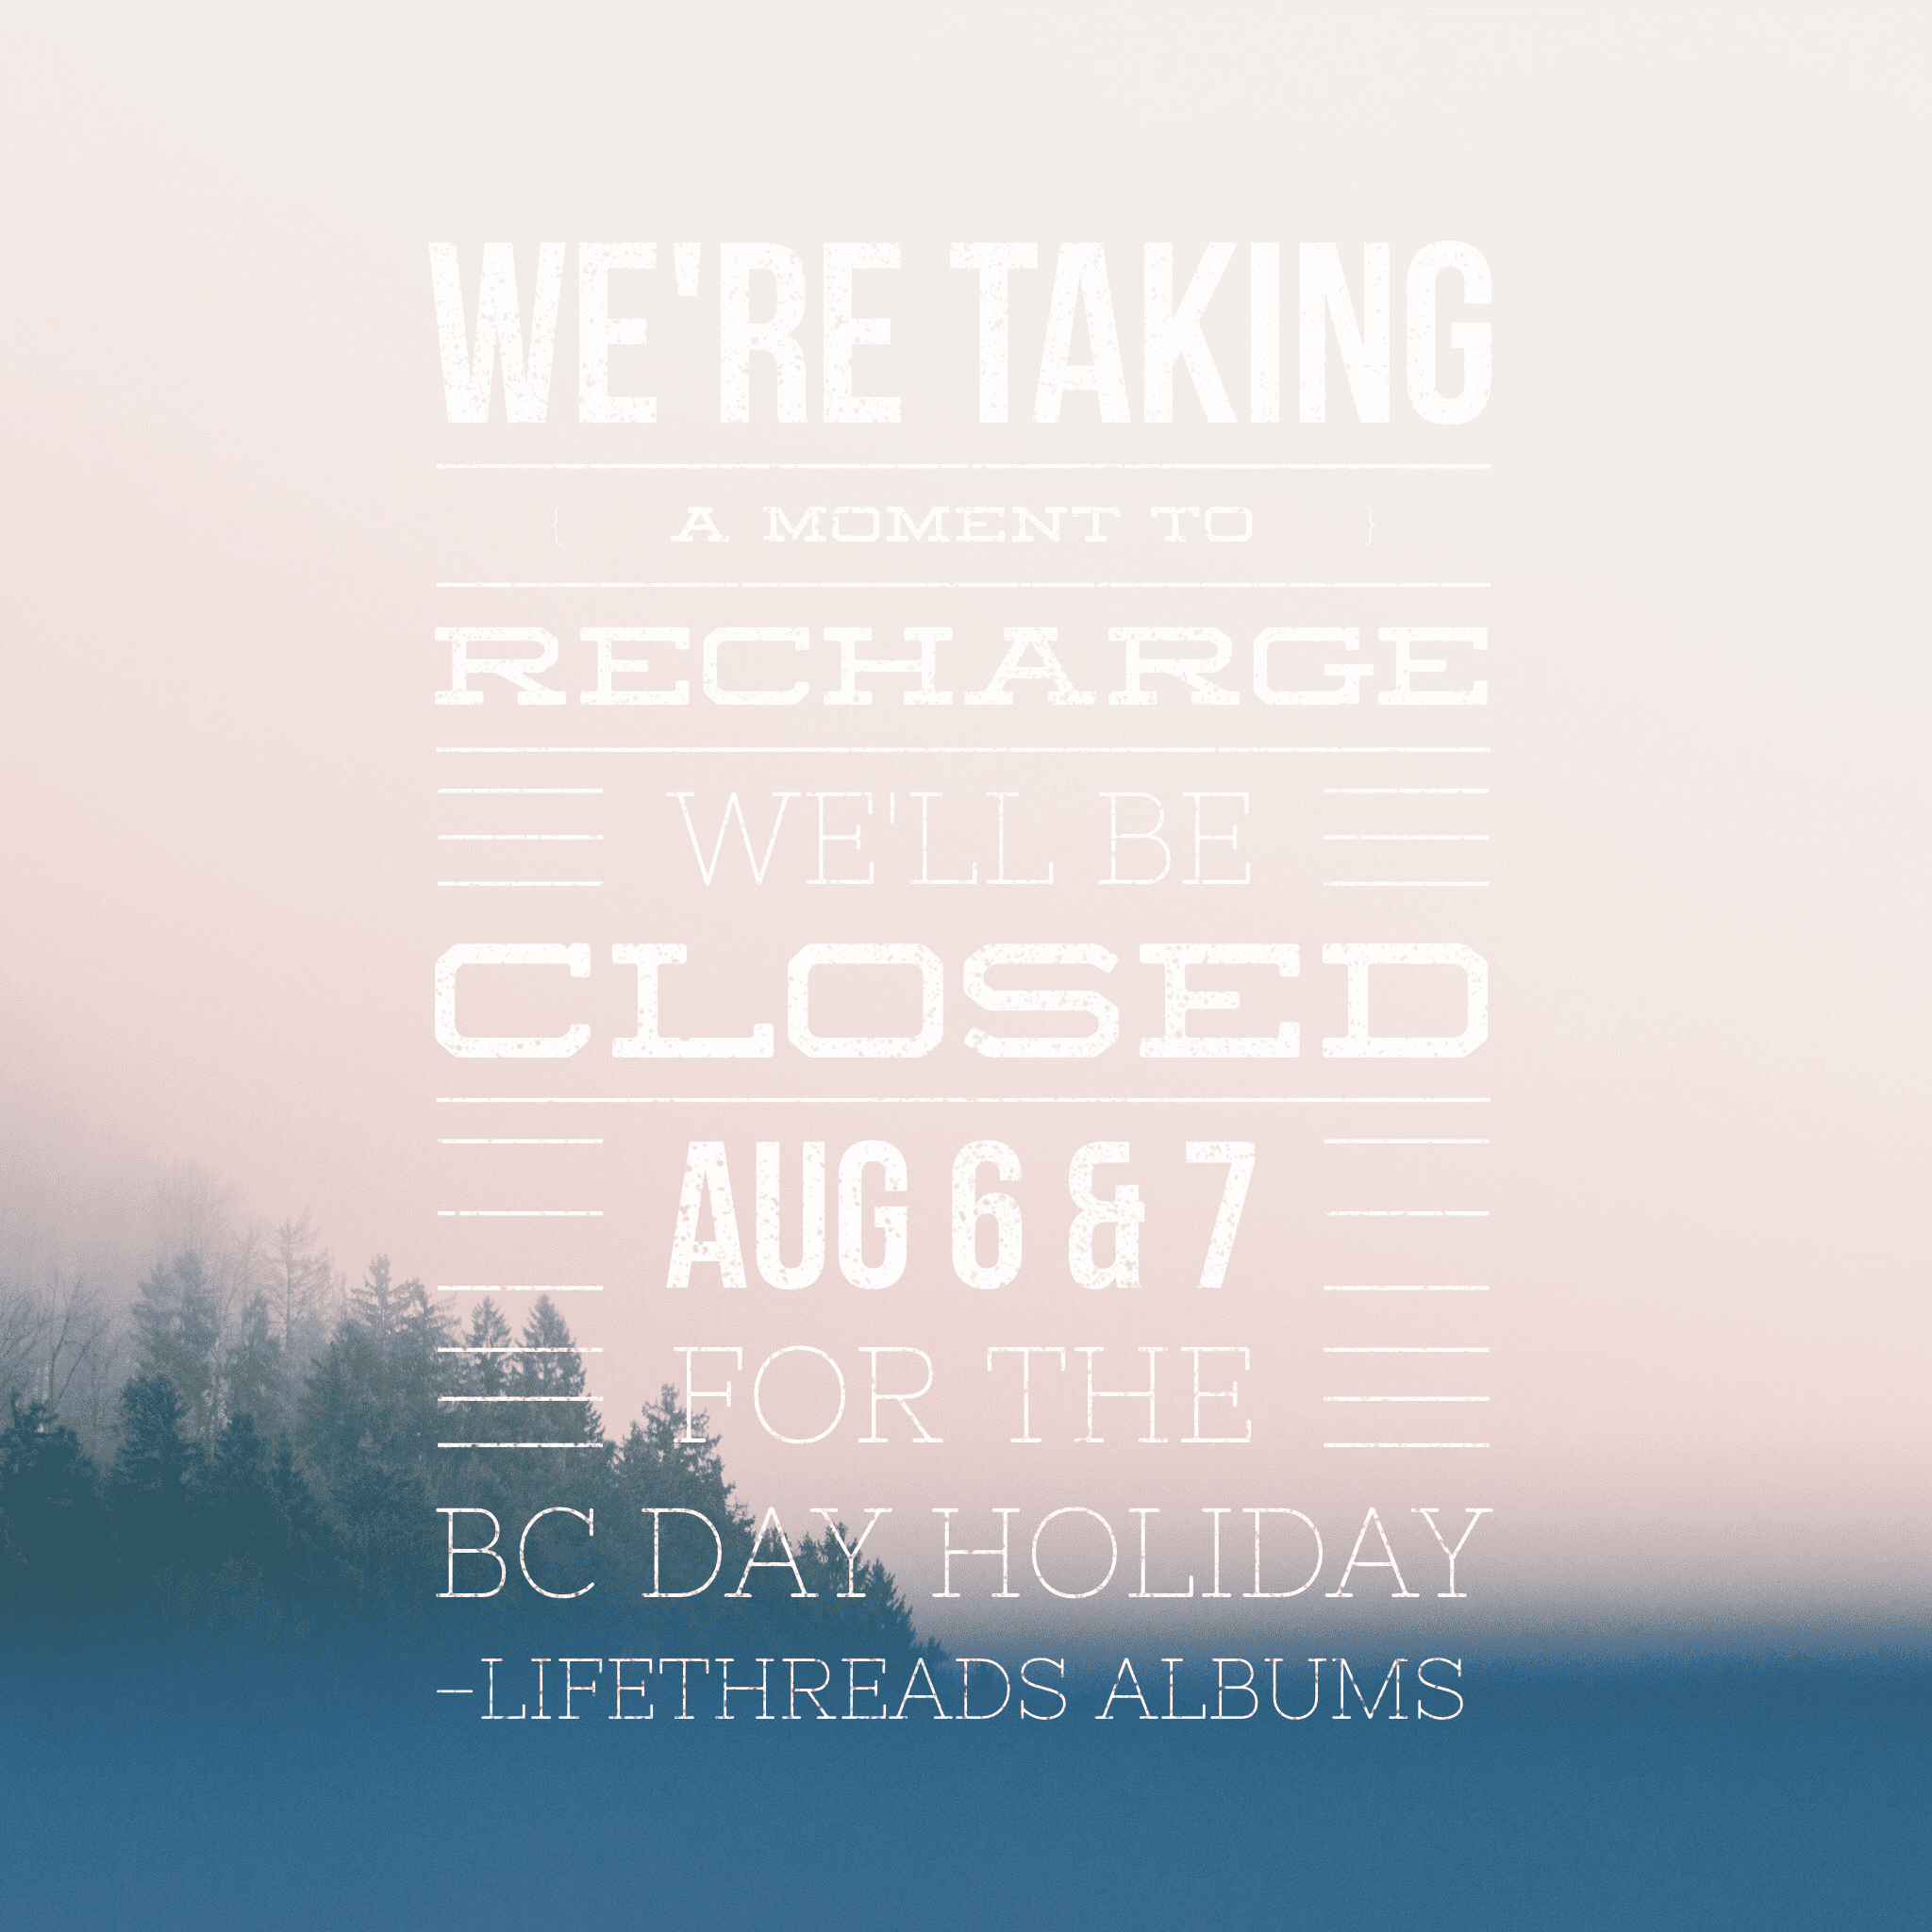 BC Day Holiday Hours with lifethreads albums